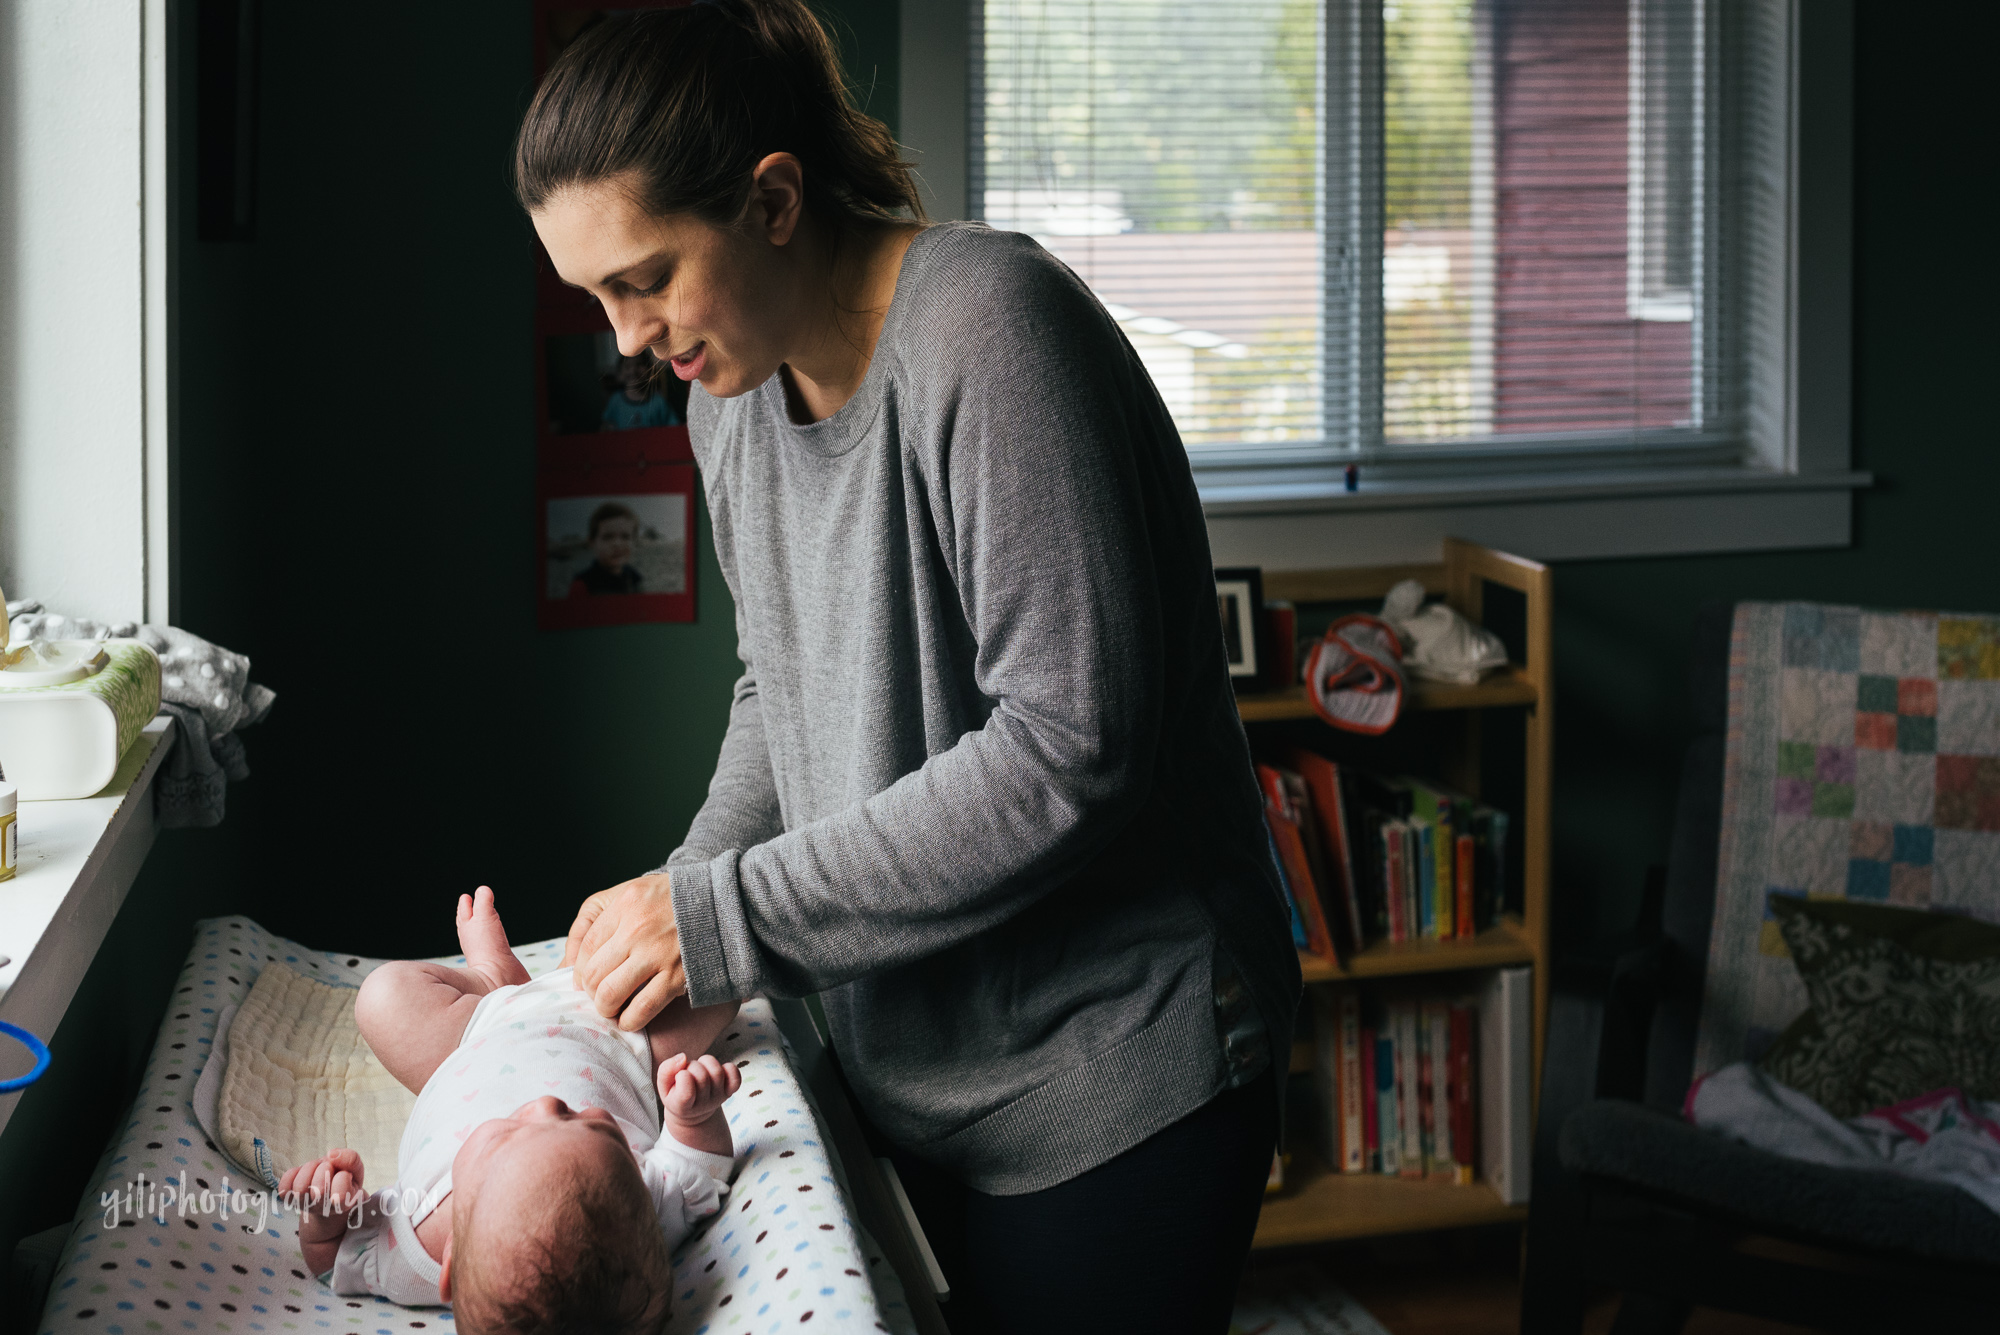 seattle mom smiling while she changes baby